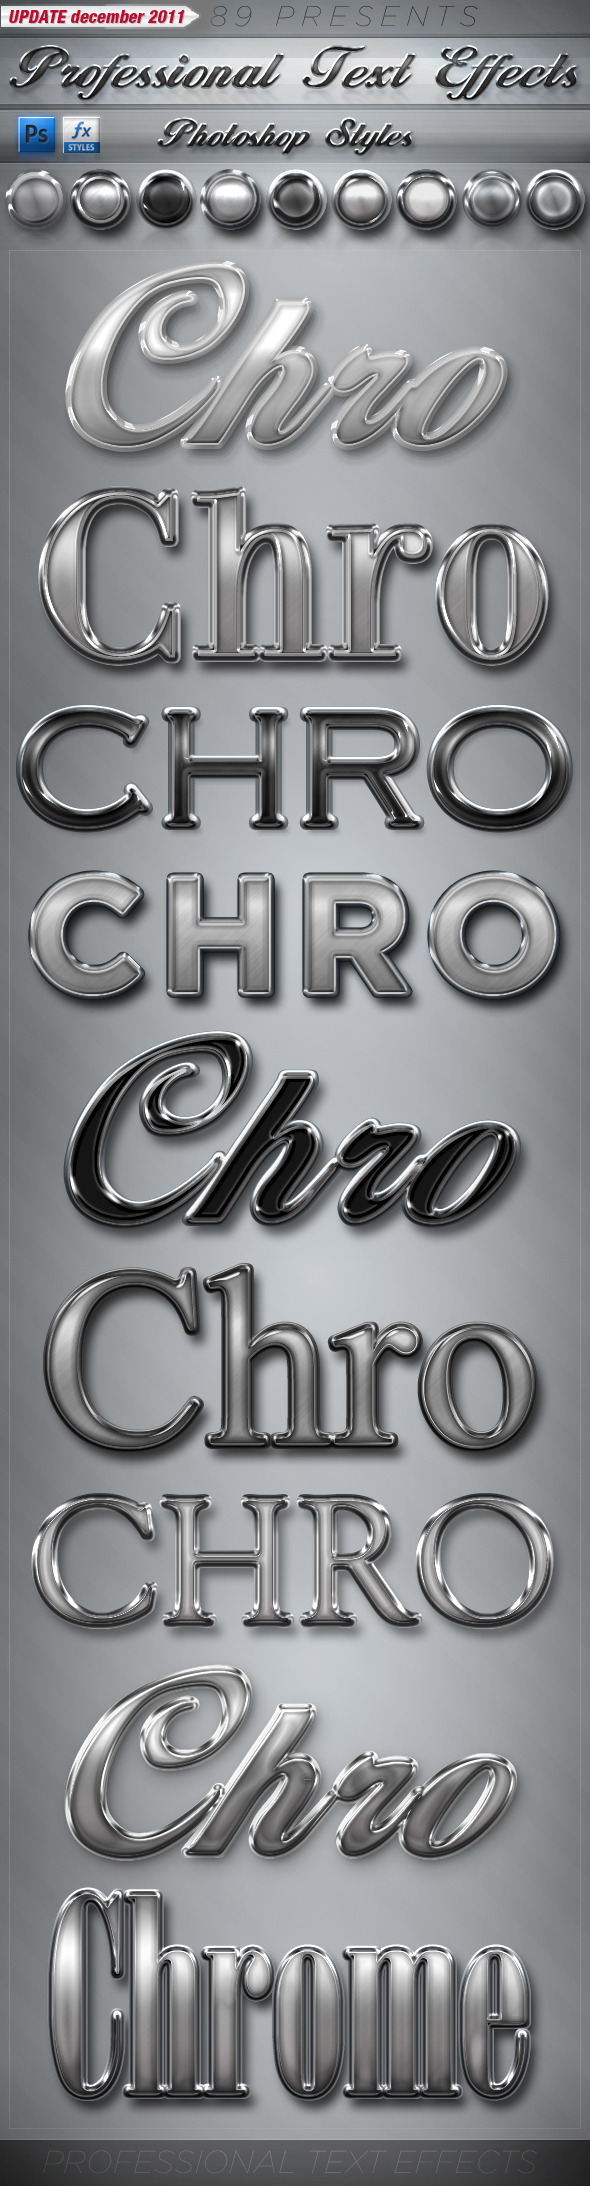 Professional Text Effects - PS Styles - Text Effects Styles